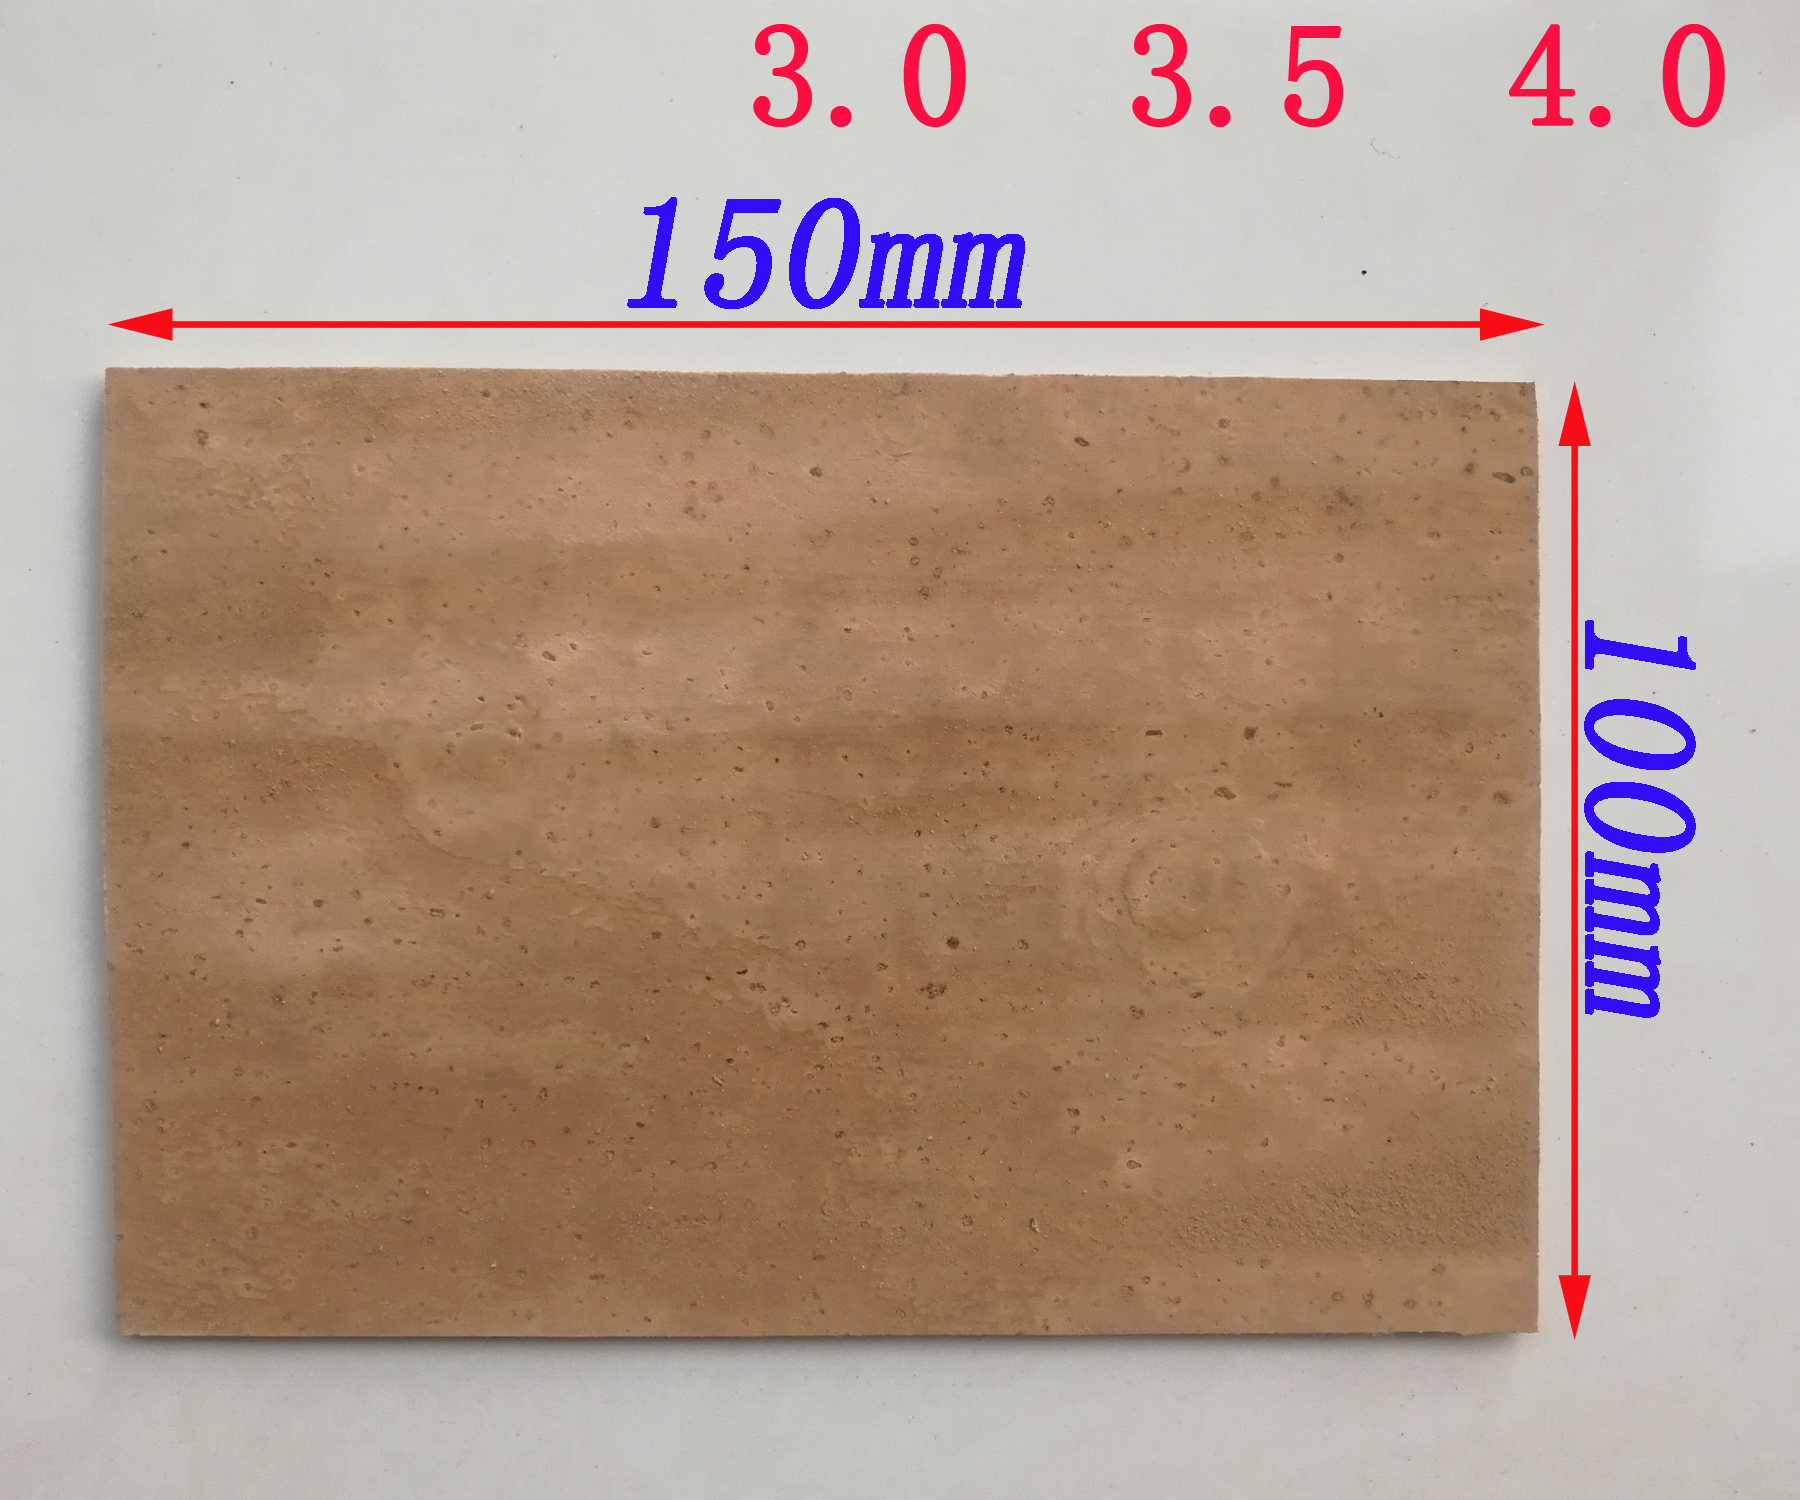 100mm*150mm Saxophone Clarinet Cork Sheet Thickness 3.0mm 3.5mm 4.0mm Cork Pads